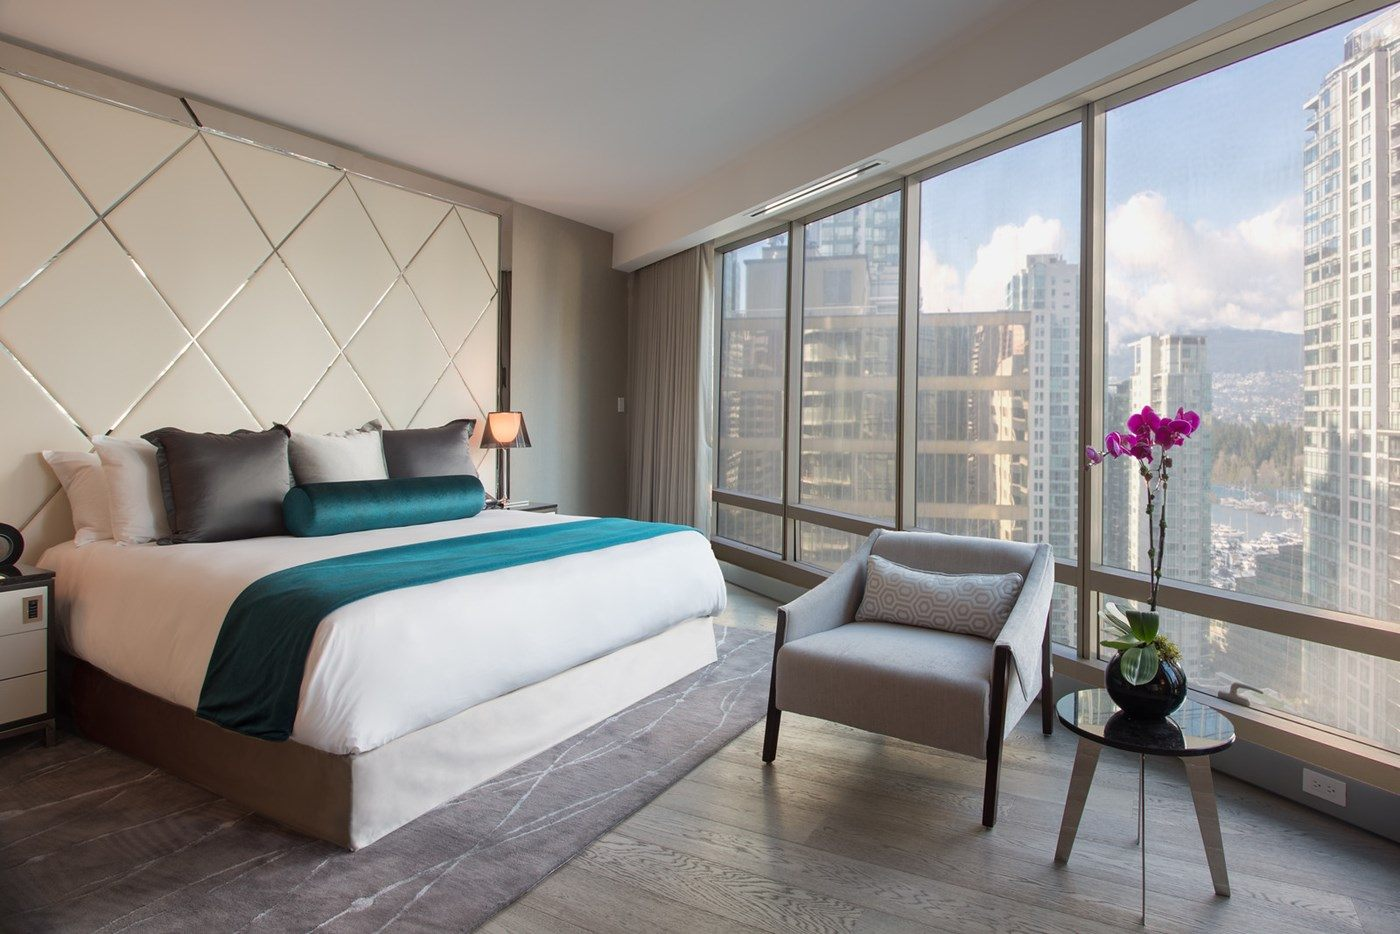 The Grand Deluxe Two-Bedroom Suite in the new Trump Tower in Vancouver (Trump International Hotel and Tower Vancouver)